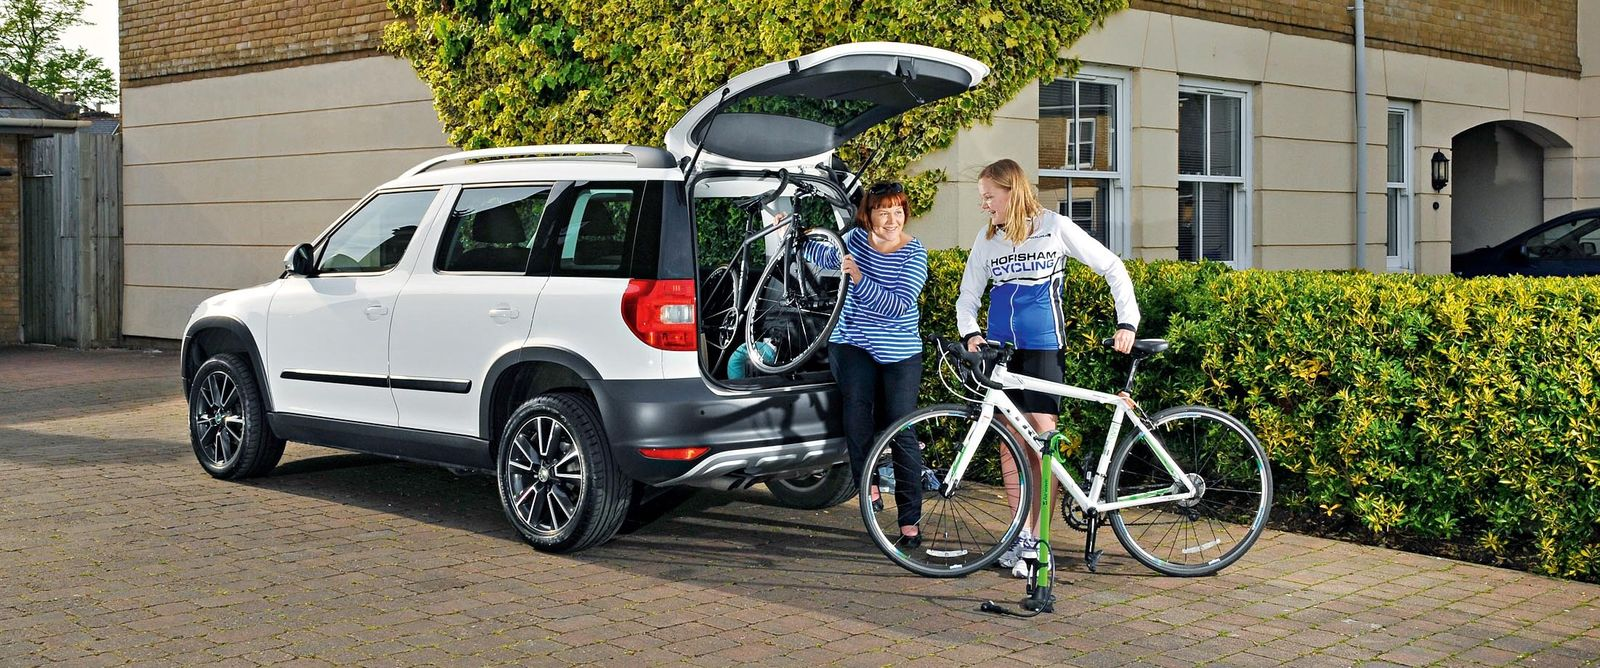 Best Cars For Carrying Bikes Our Top 5 Carwow